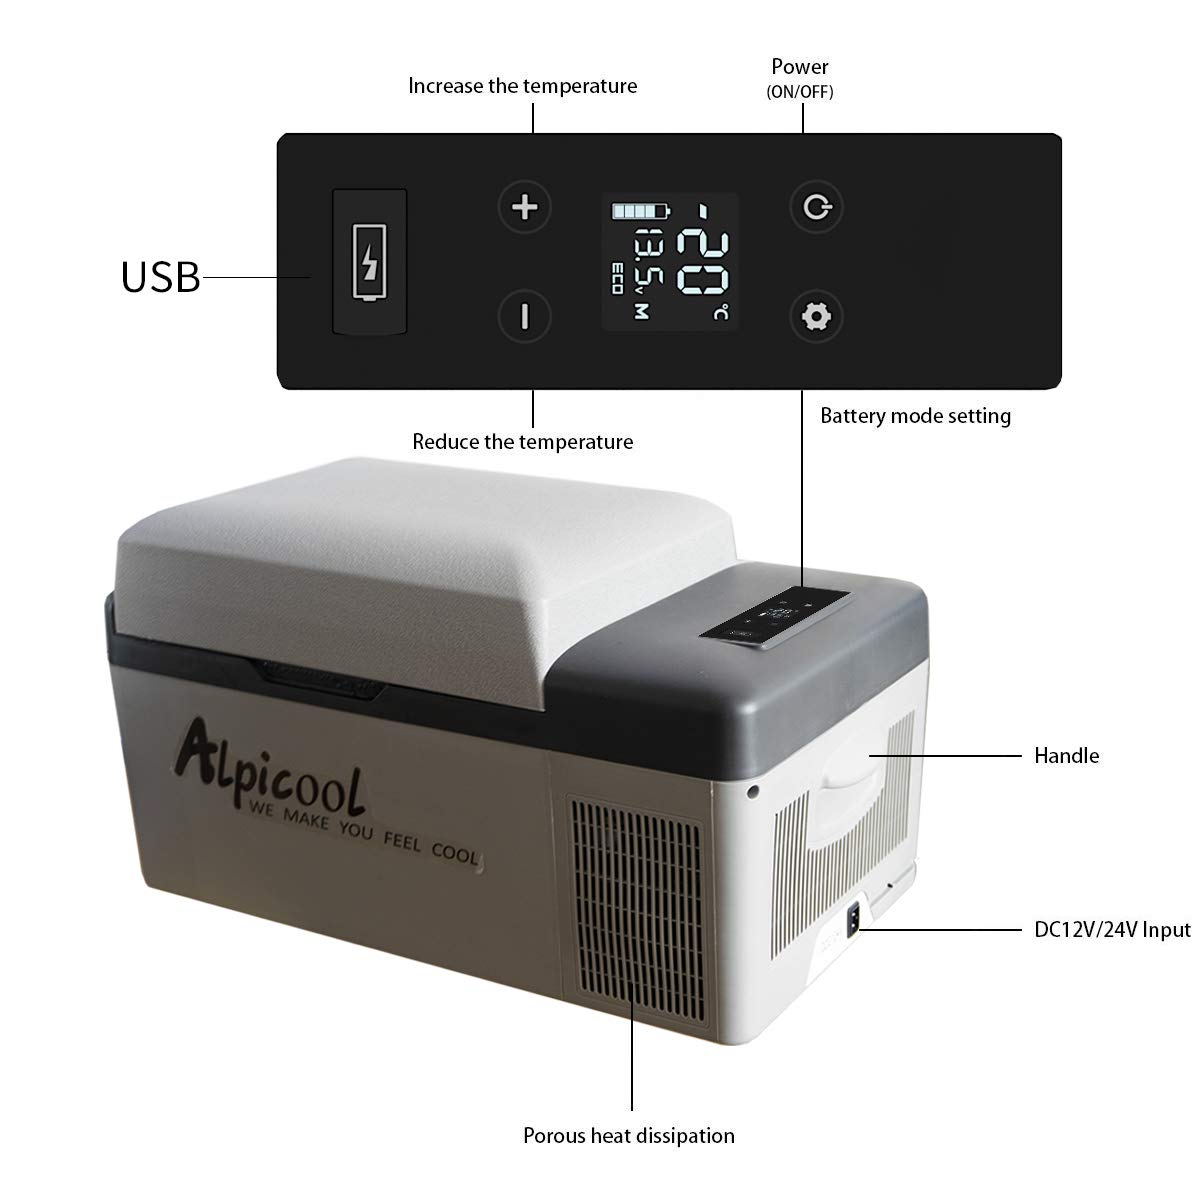 Alpicool C22 Portable Refrigerator 23 Quart Vehicle Car Mini fridge freezer for Driving Fishing Truck RV Outdoor and Home use -12//24V DC and 110-240 AC with USB socket Travel